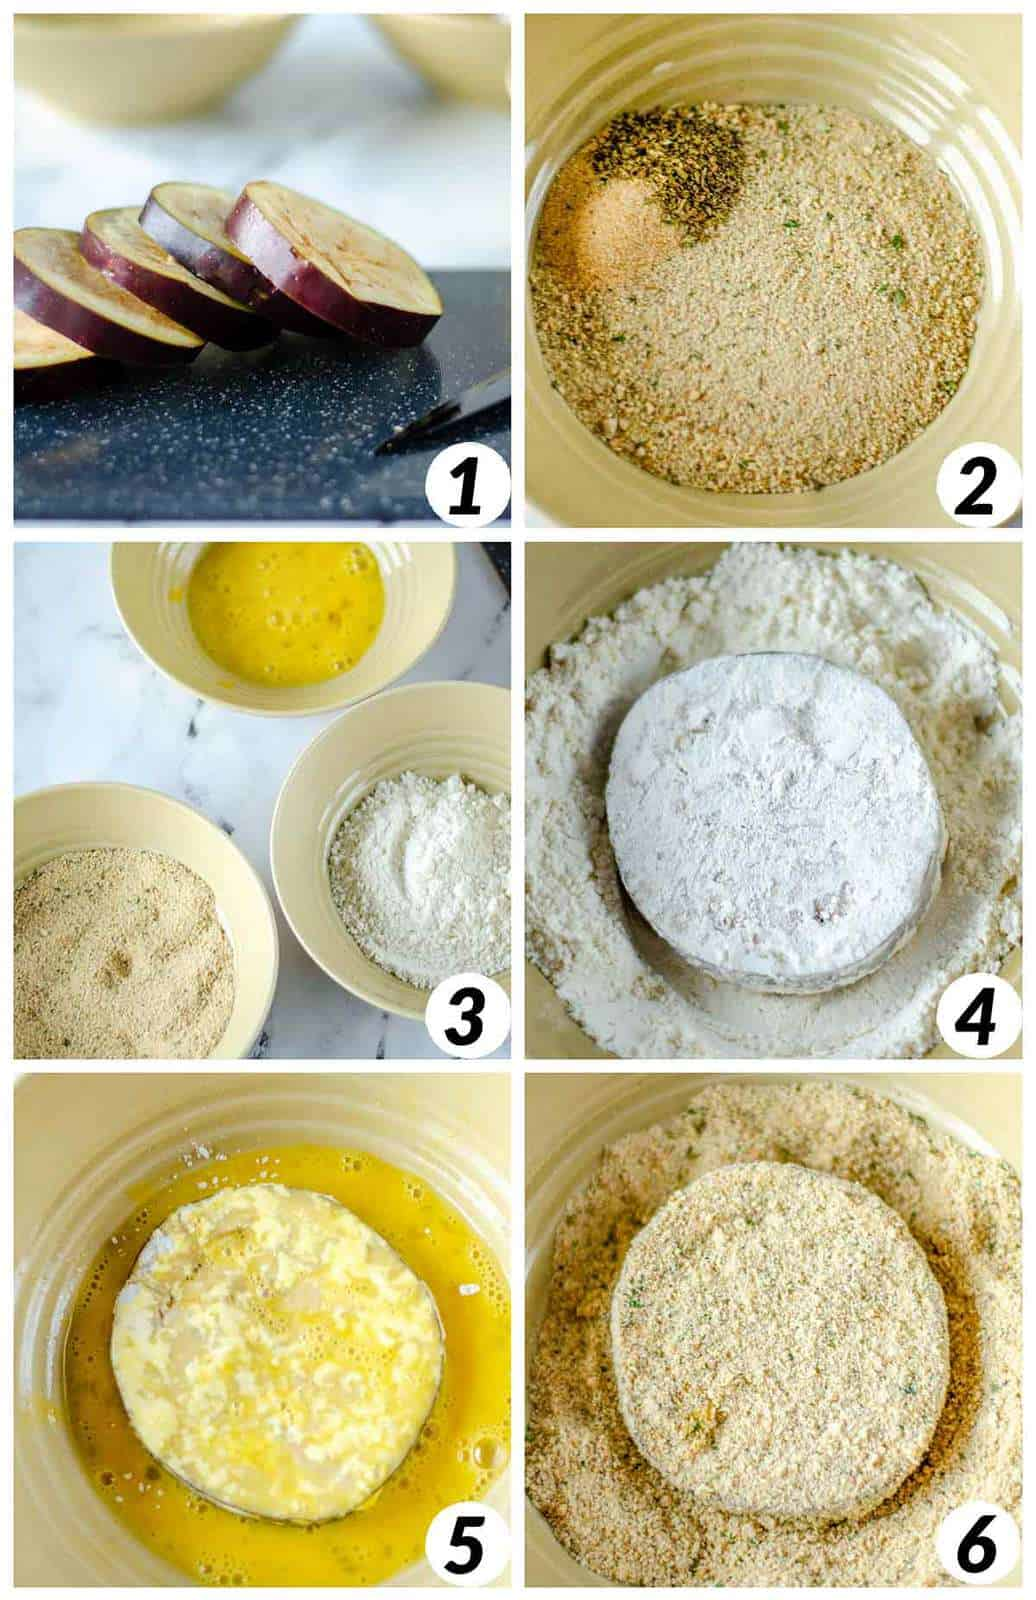 A 6 photo collage that show each step of prepping the eggplant by cutting it into rounds and then coating it in breadcrumbs.